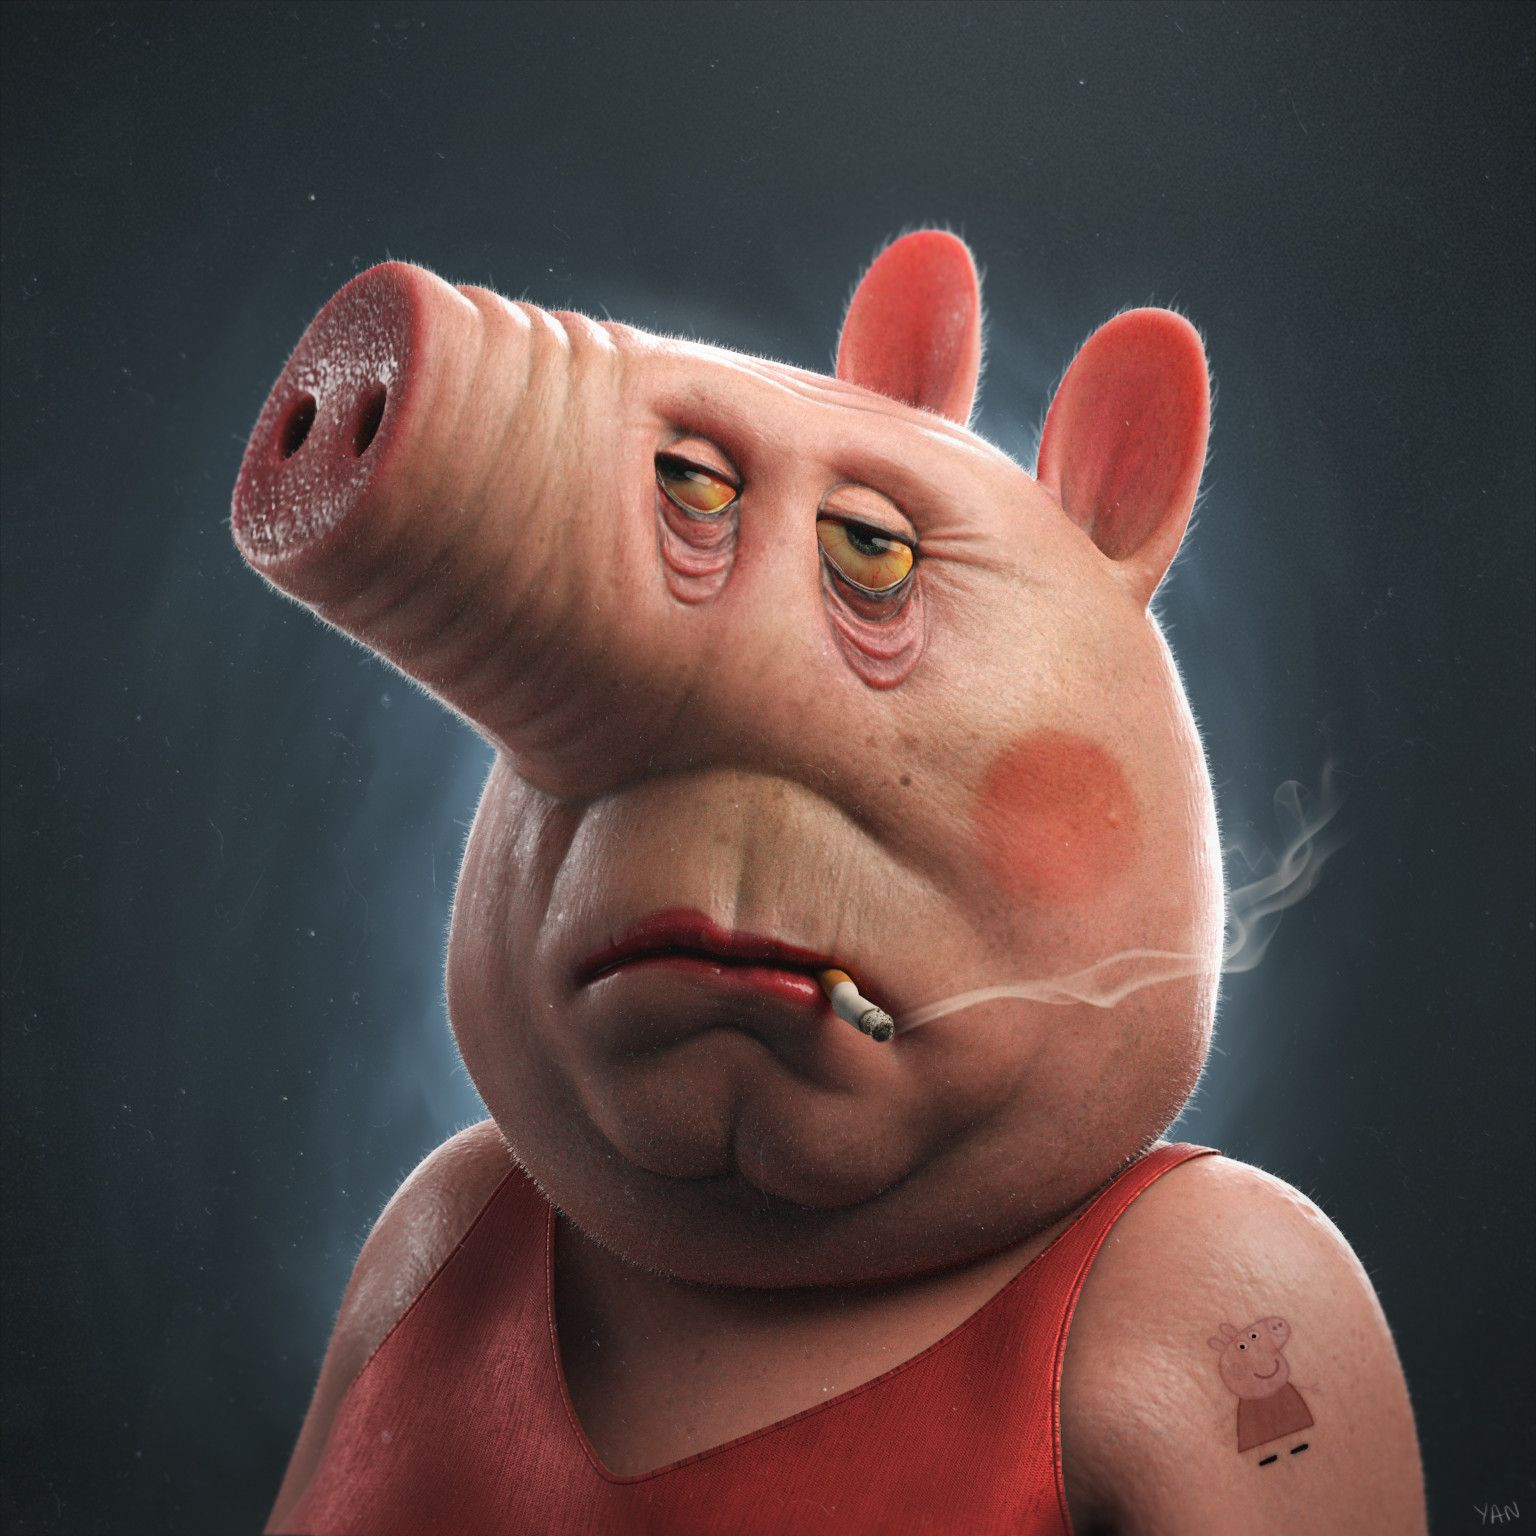 Pin By Ause On 3d Stuff In 2019 Peppa Pig Peppa Pig Memes Pig Sketch